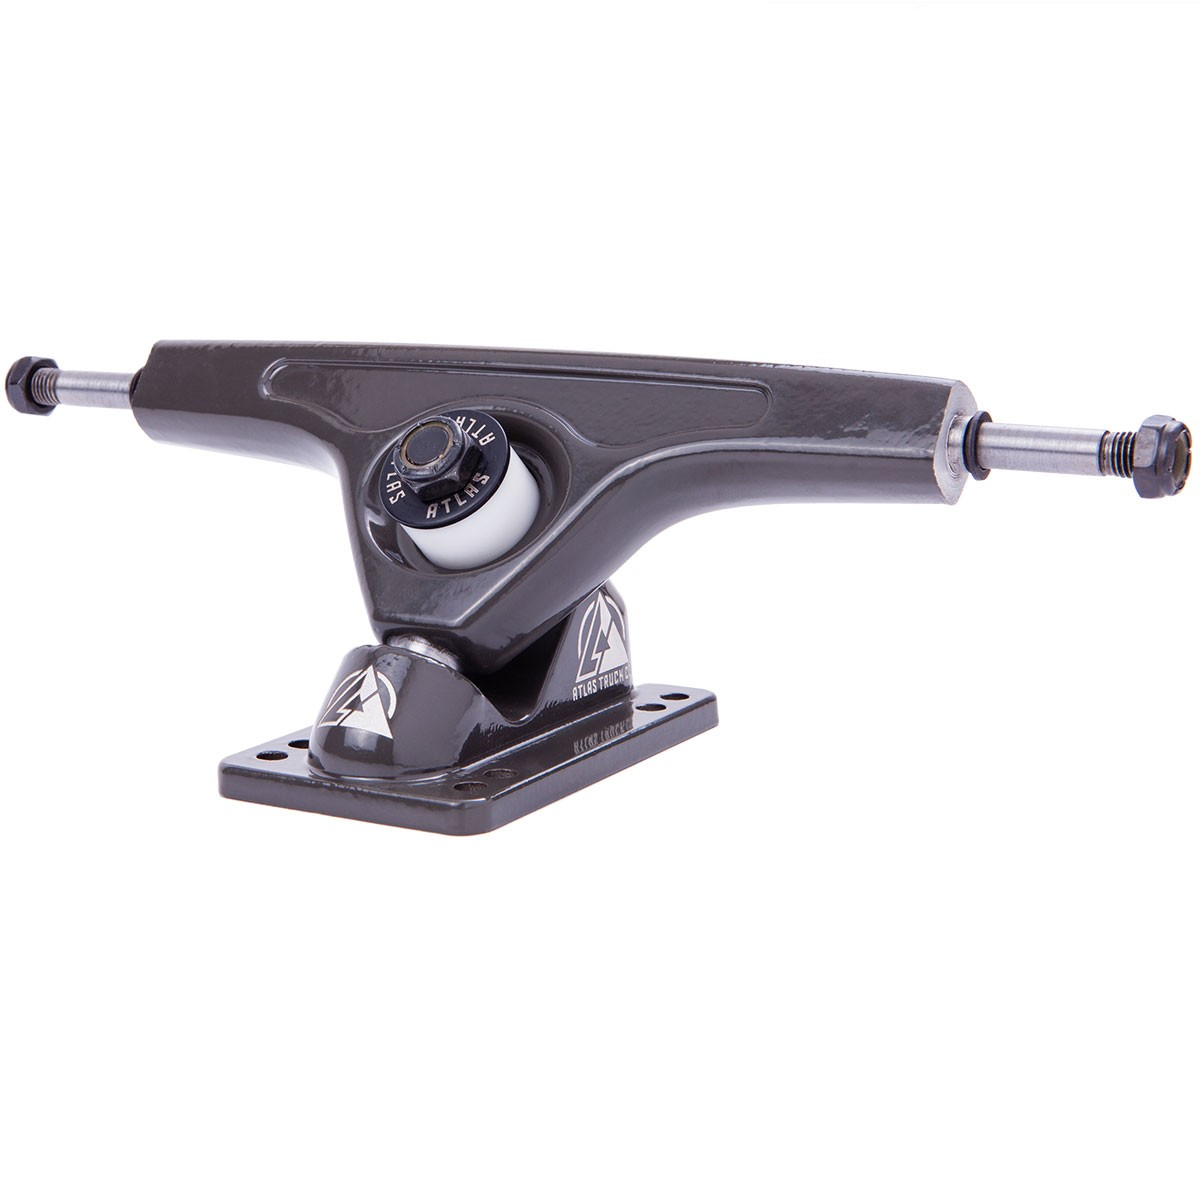 Atlas Truck Co. Longboard Trucks - Dark Grey 180mm